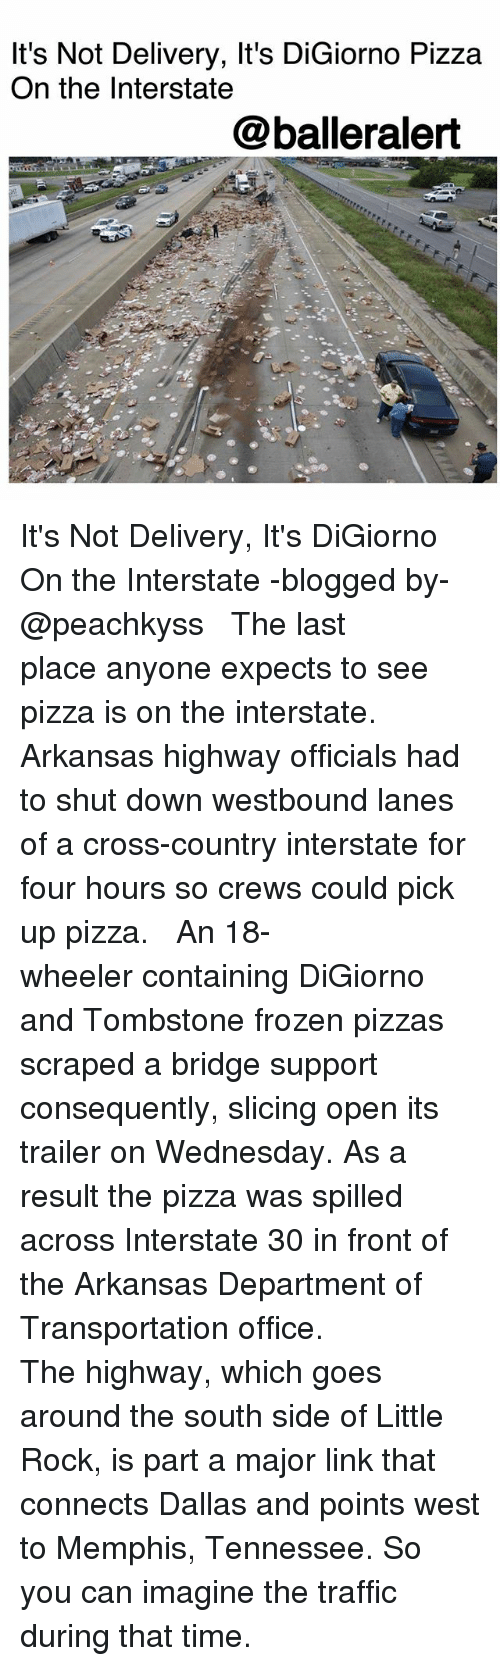 Frozen, Memes, and Pizza: It's Not Delivery, It's DiGiorno Pizza  On the Interstate  @balleralert It's Not Delivery, It's DiGiorno On the Interstate -blogged by- @peachkyss ⠀⠀⠀⠀⠀⠀⠀ ⠀⠀⠀⠀⠀⠀⠀ The last place anyone expects to see pizza is on the interstate. Arkansas highway officials had to shut down westbound lanes of a cross-country interstate for four hours so crews could pick up pizza. ⠀⠀⠀⠀⠀⠀⠀ ⠀⠀⠀⠀⠀⠀⠀ An 18-wheeler containing DiGiorno and Tombstone frozen pizzas scraped a bridge support consequently, slicing open its trailer on Wednesday. As a result the pizza was spilled across Interstate 30 in front of the Arkansas Department of Transportation office. ⠀⠀⠀⠀⠀⠀⠀ ⠀⠀⠀⠀⠀⠀⠀ The highway, which goes around the south side of Little Rock, is part a major link that connects Dallas and points west to Memphis, Tennessee. So you can imagine the traffic during that time.